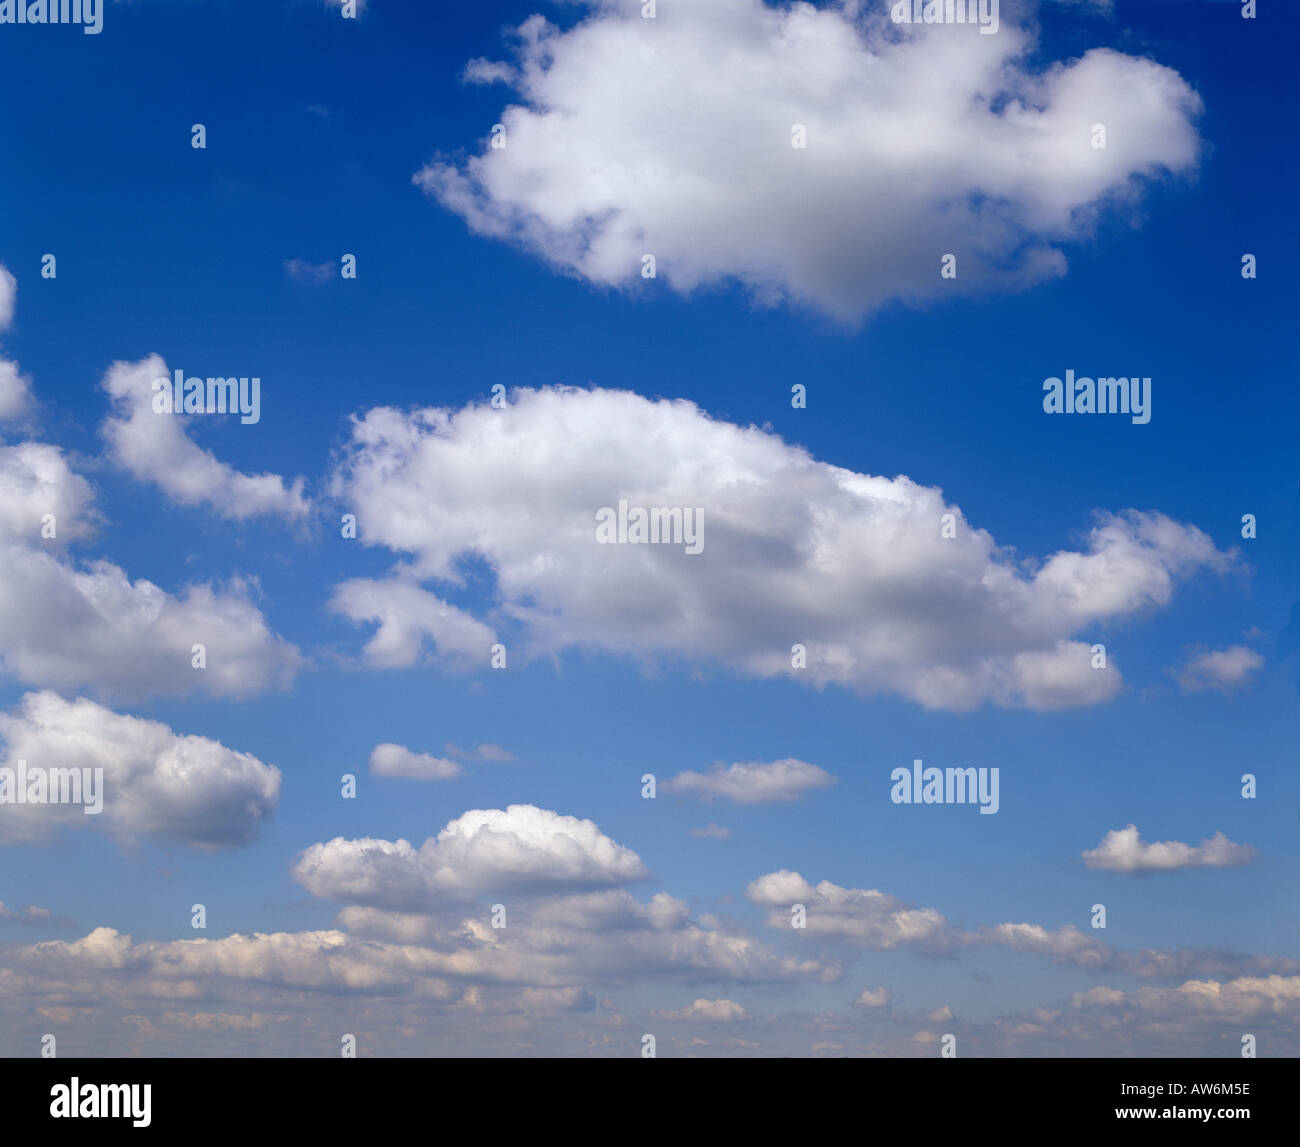 BLUE SKY FLUFFY WHITE CLOUDS HIGH PRESSURE WEATHER SUMMER EUROPE - Stock Image